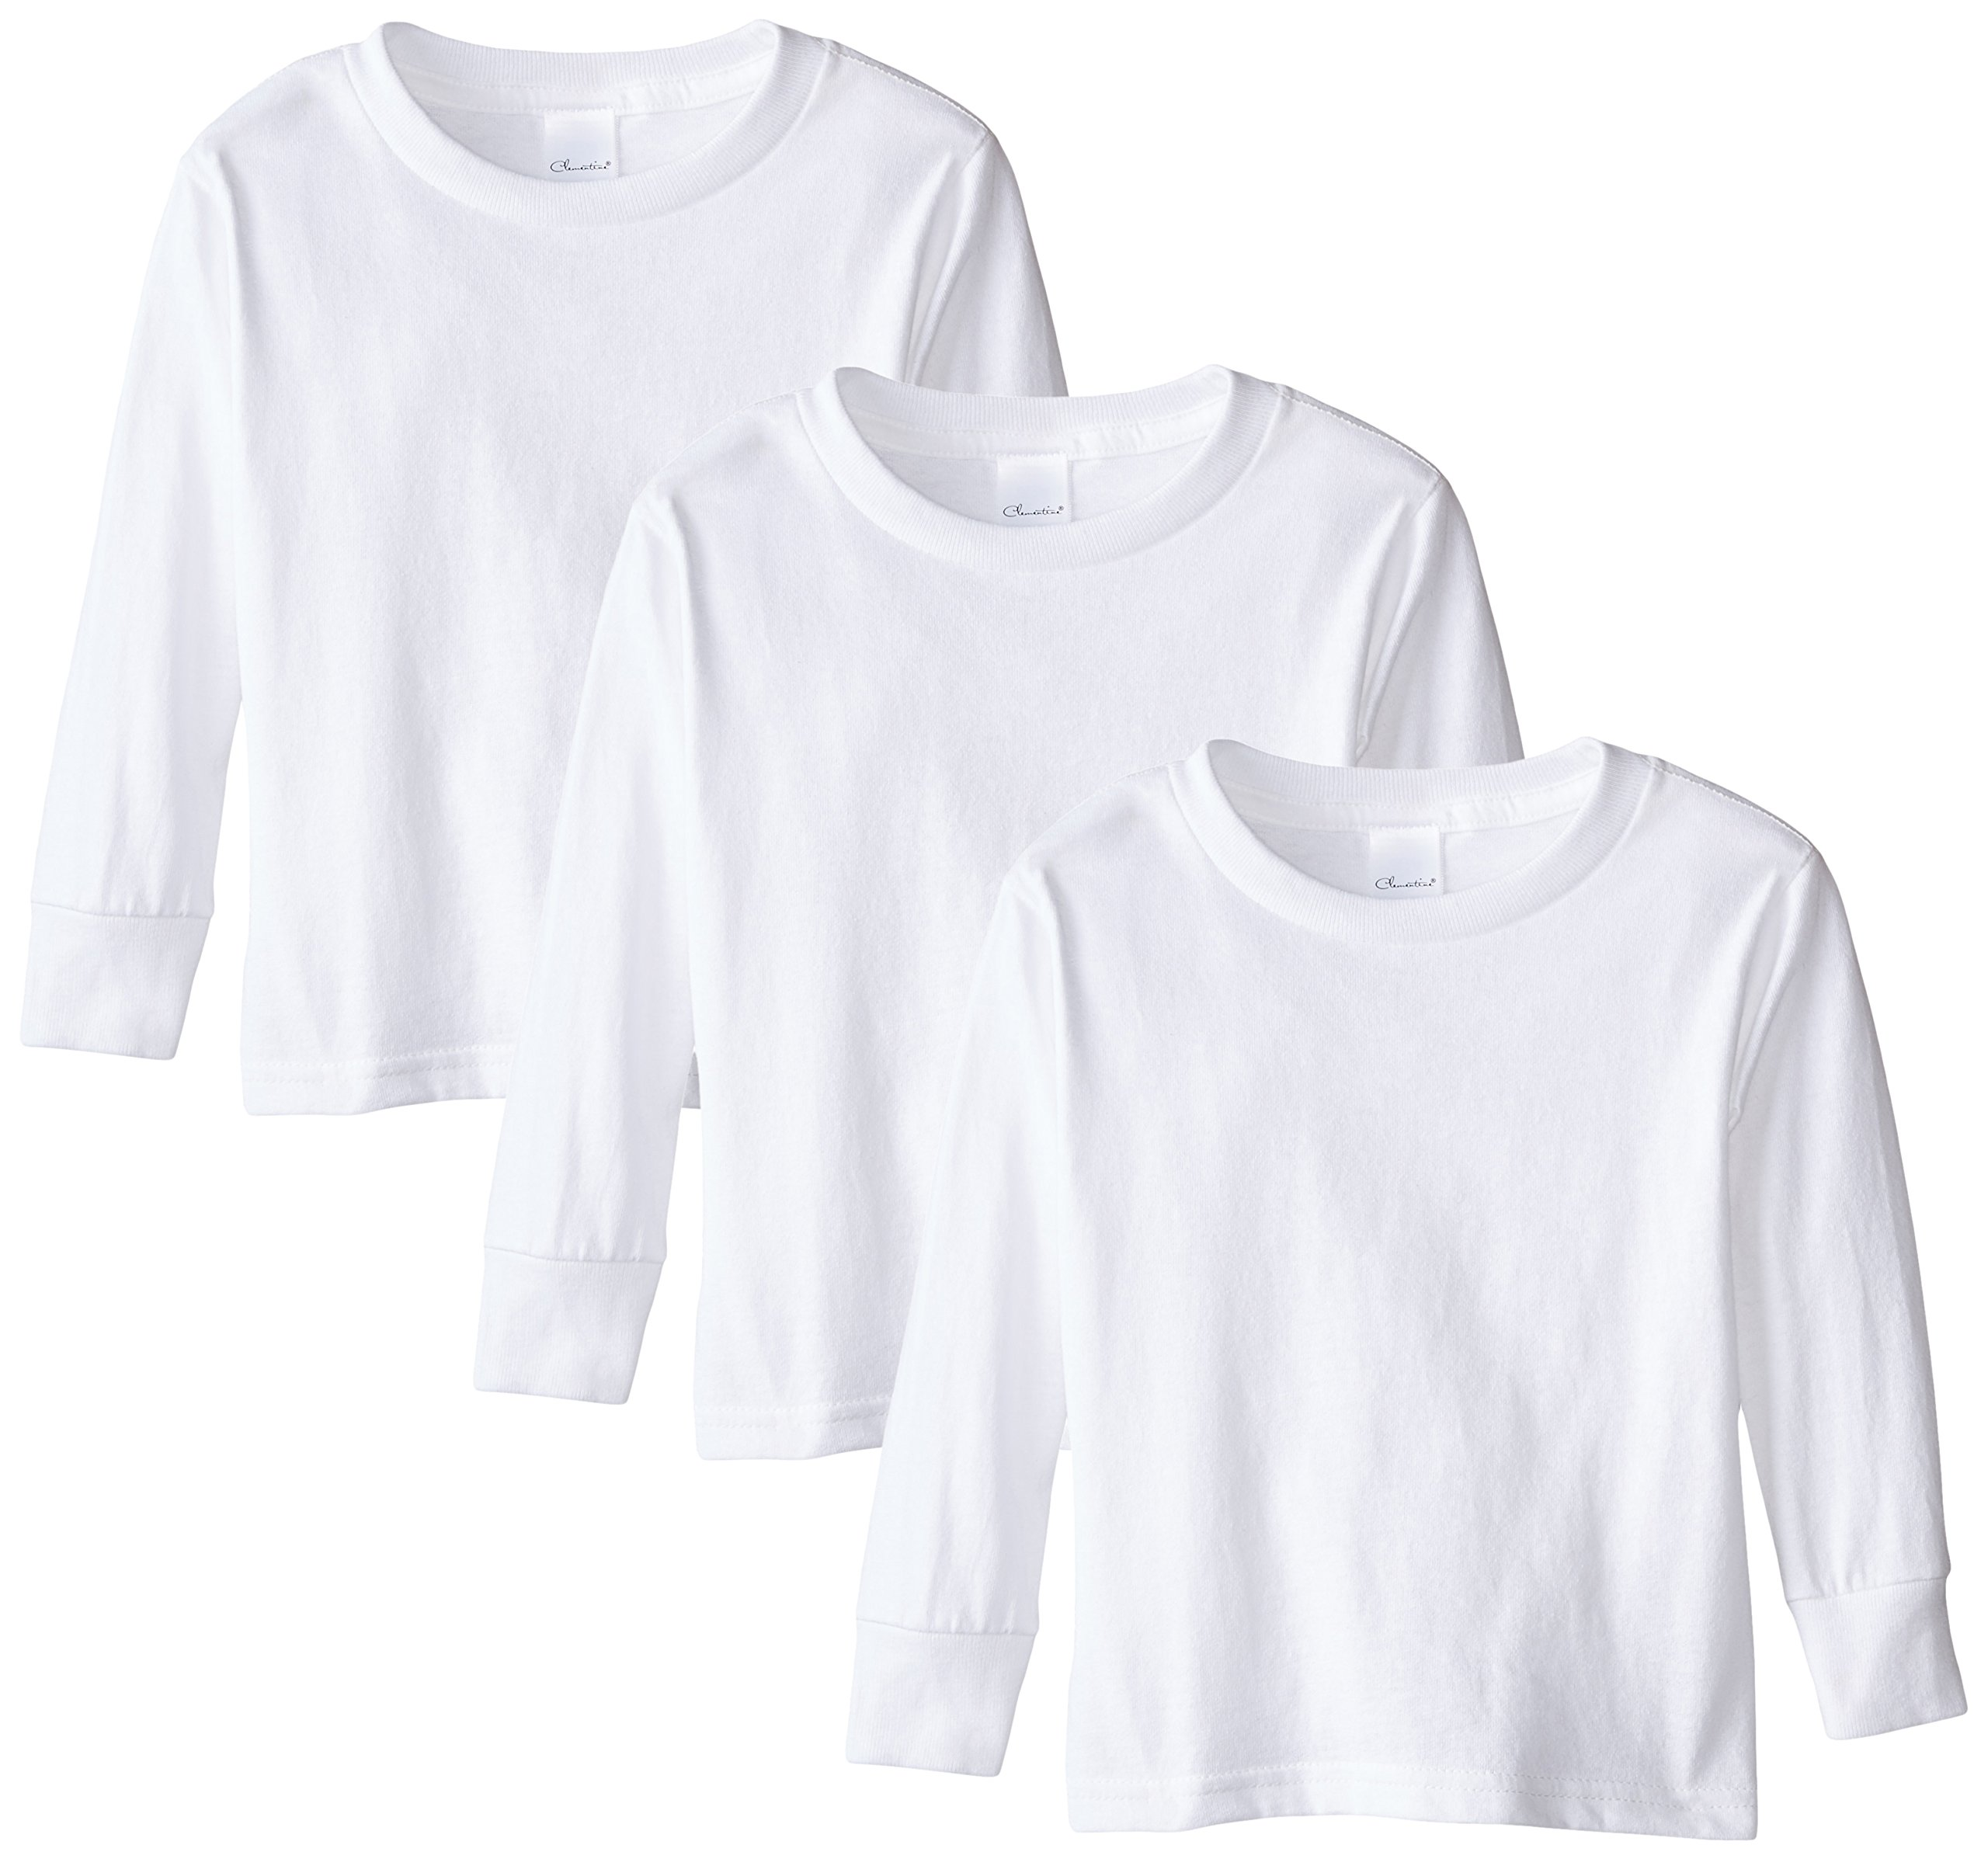 Clementine Little Girls' Toddler Long Sleeve Basic T-Shirt Three-Pack,White,2T